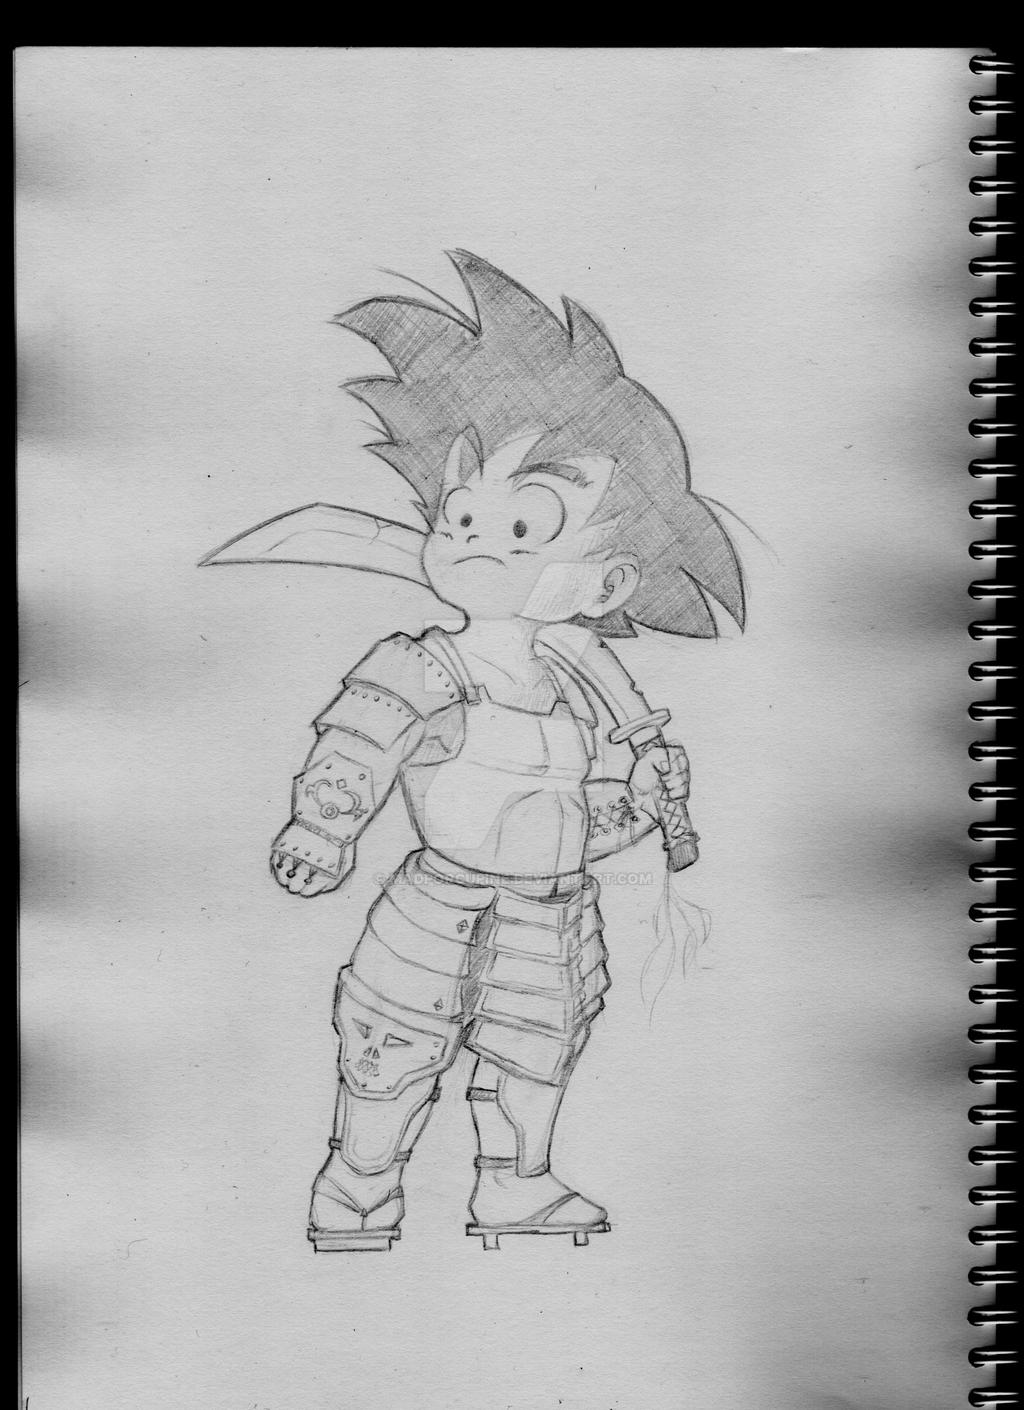 Son Goku The Samurai Warrior By MadPorcupine